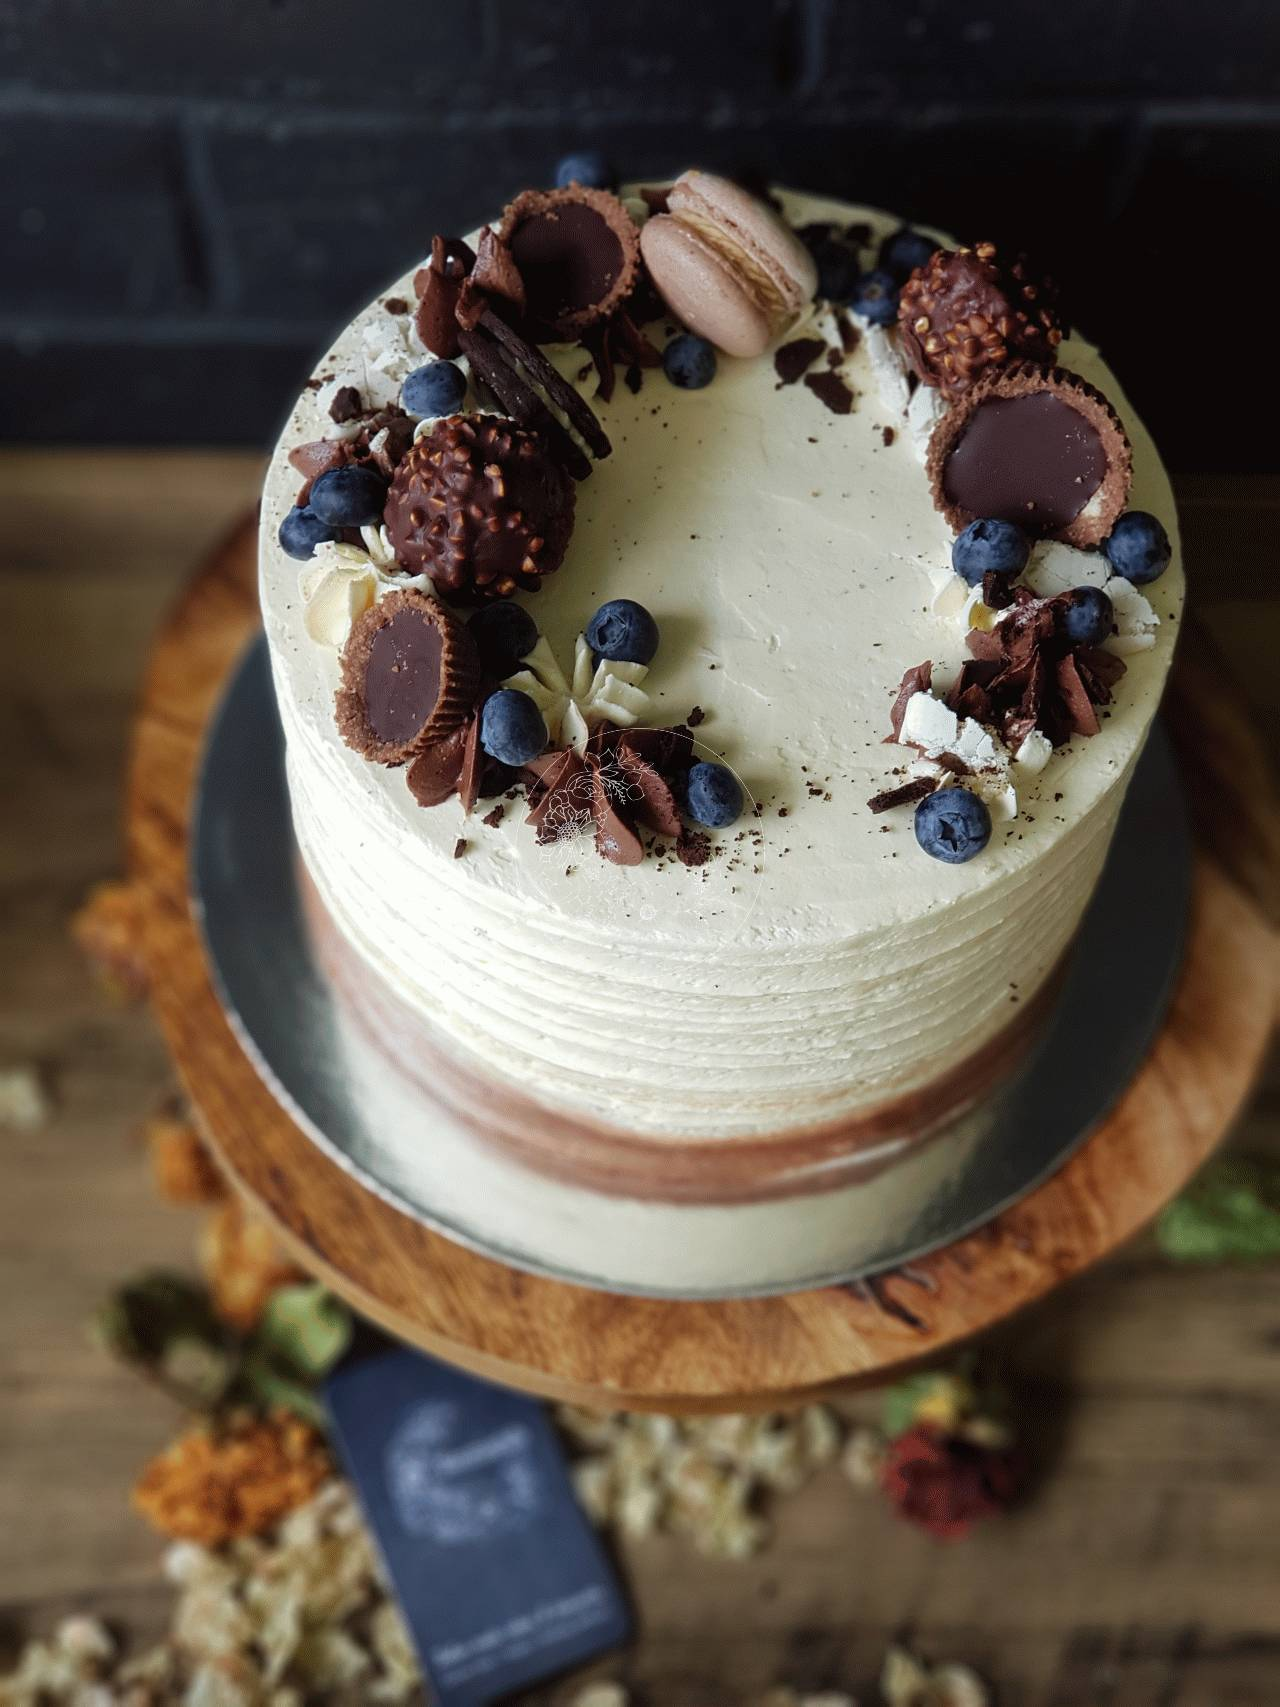 Indulgence Birthday - Vanilla textured icing with coconut sugar cookies, custom chocolate topper, blueberries and house made chocolate garnishes and macarons